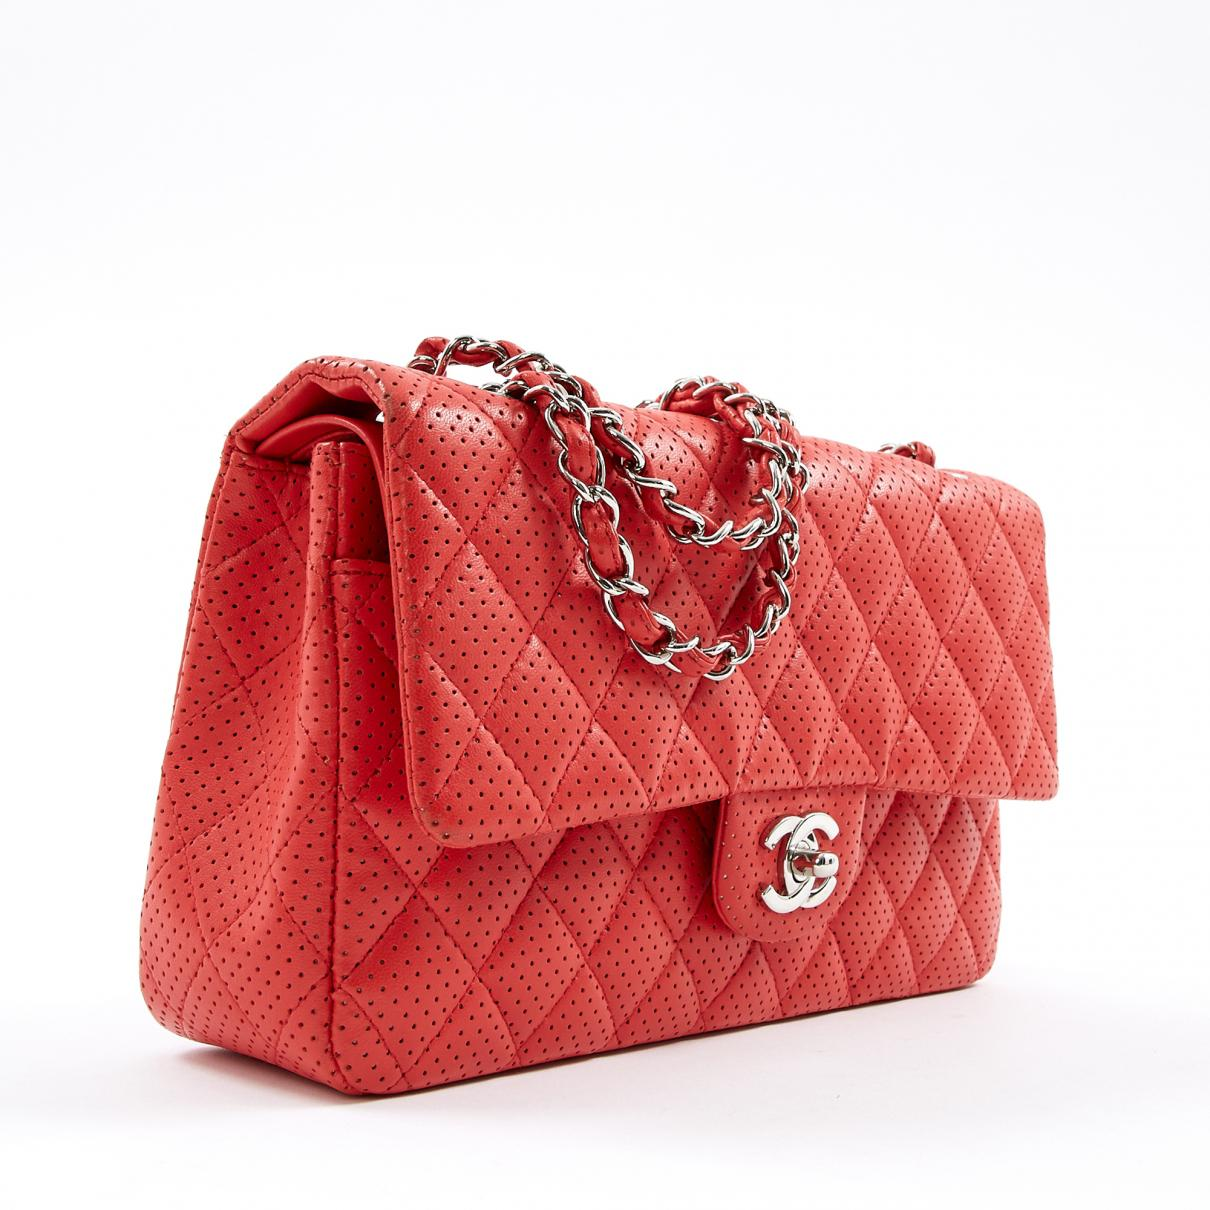 5944dfb17479 Chanel - Red Timeless Leather Crossbody Bag - Lyst. View fullscreen